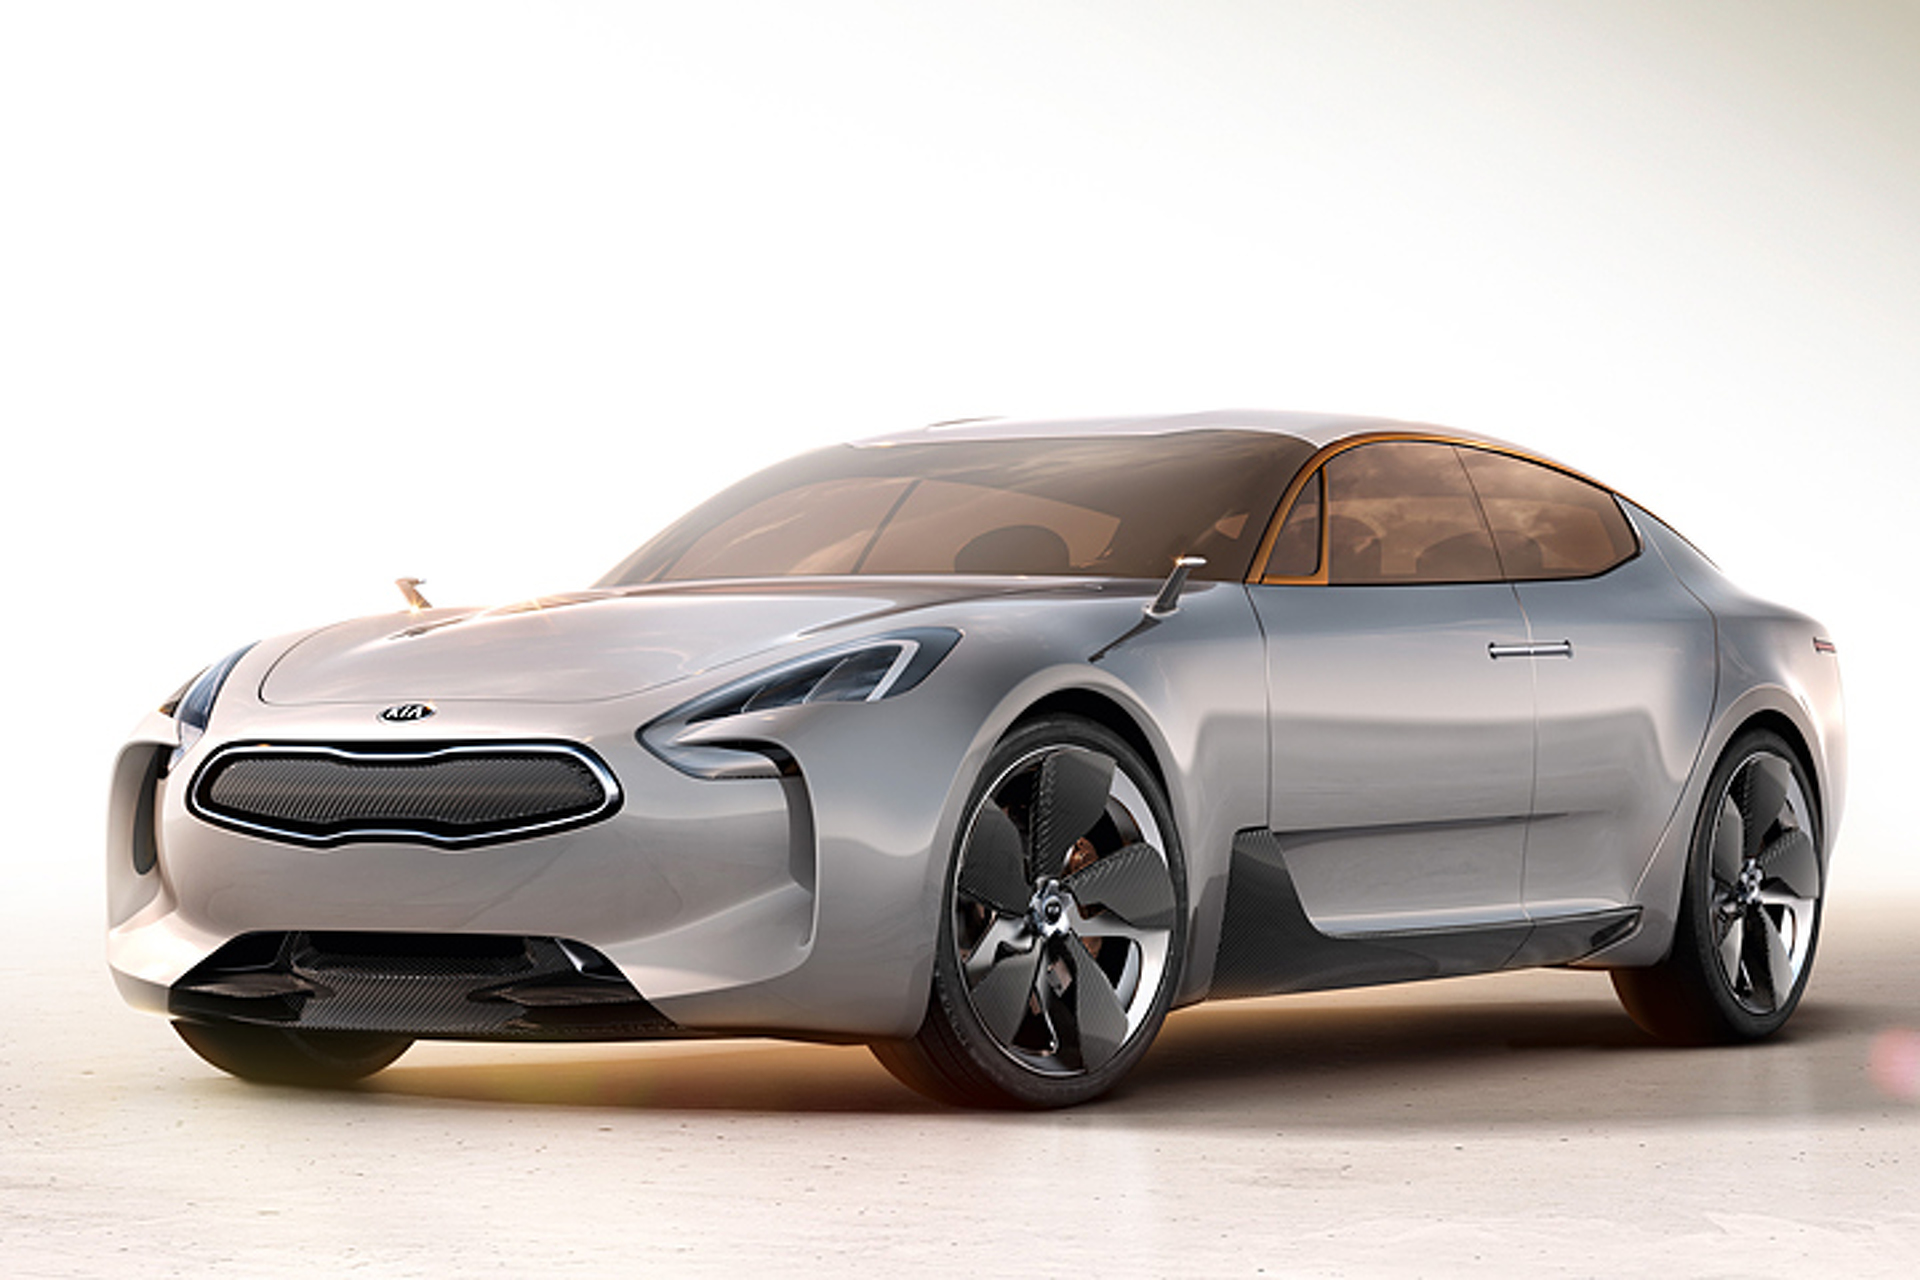 High Performance Kia Sedan and 'Stinger' Coupe Rumored for 2018